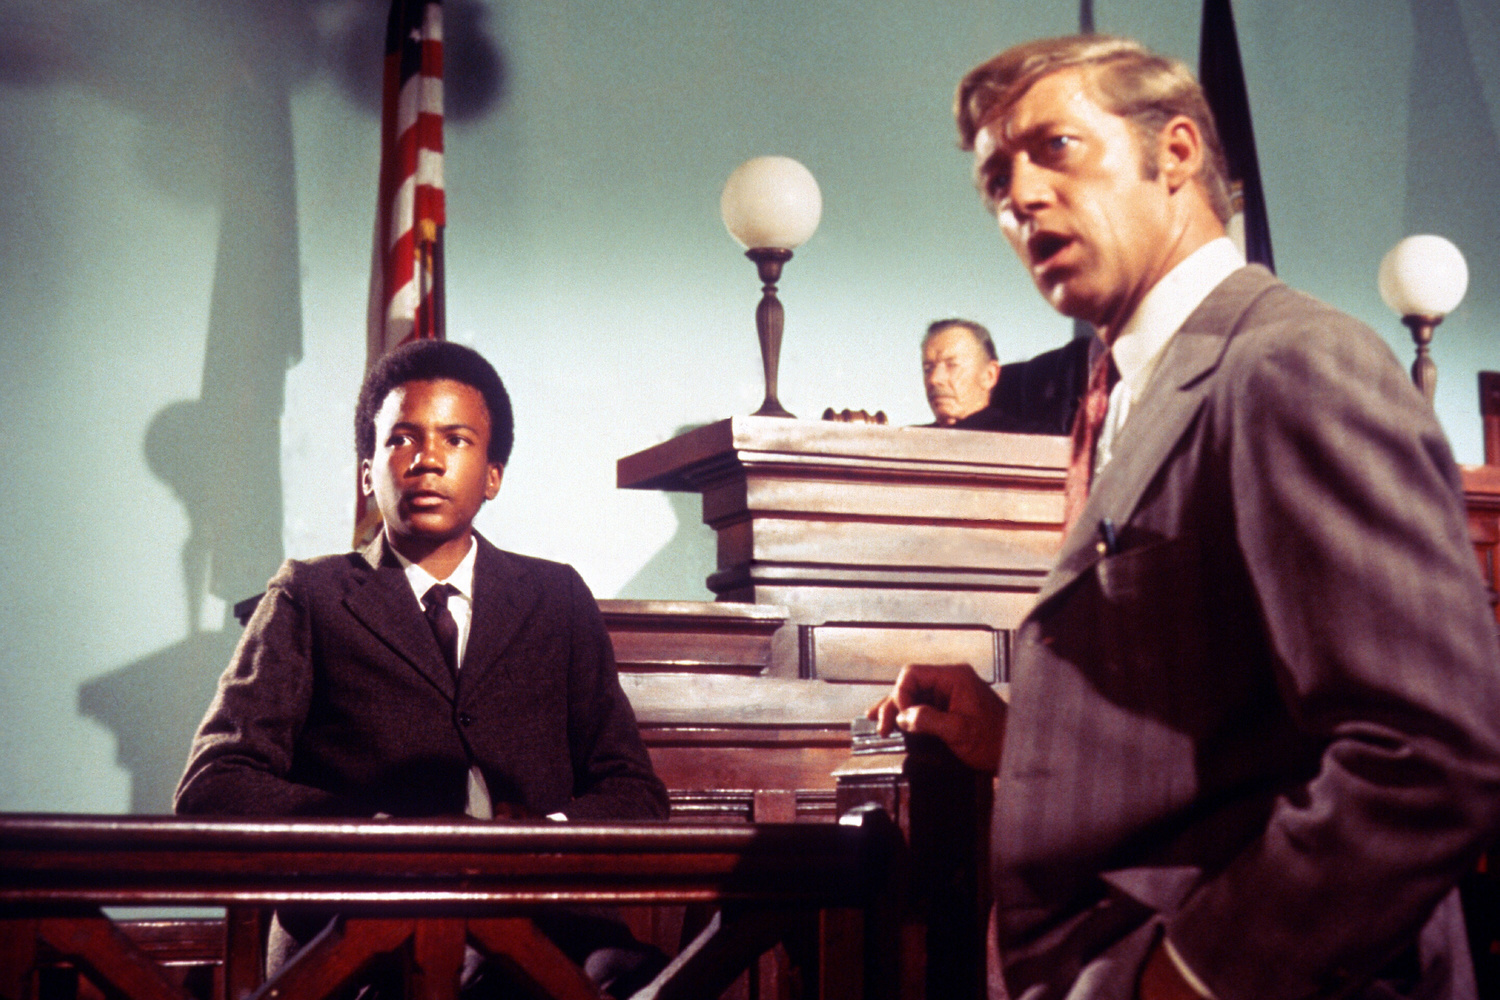 The Learning Tree. 1969. USA. Directed by Gordon Parks. Courtesy of Warner Bros./Photofest. © Warner Bros.